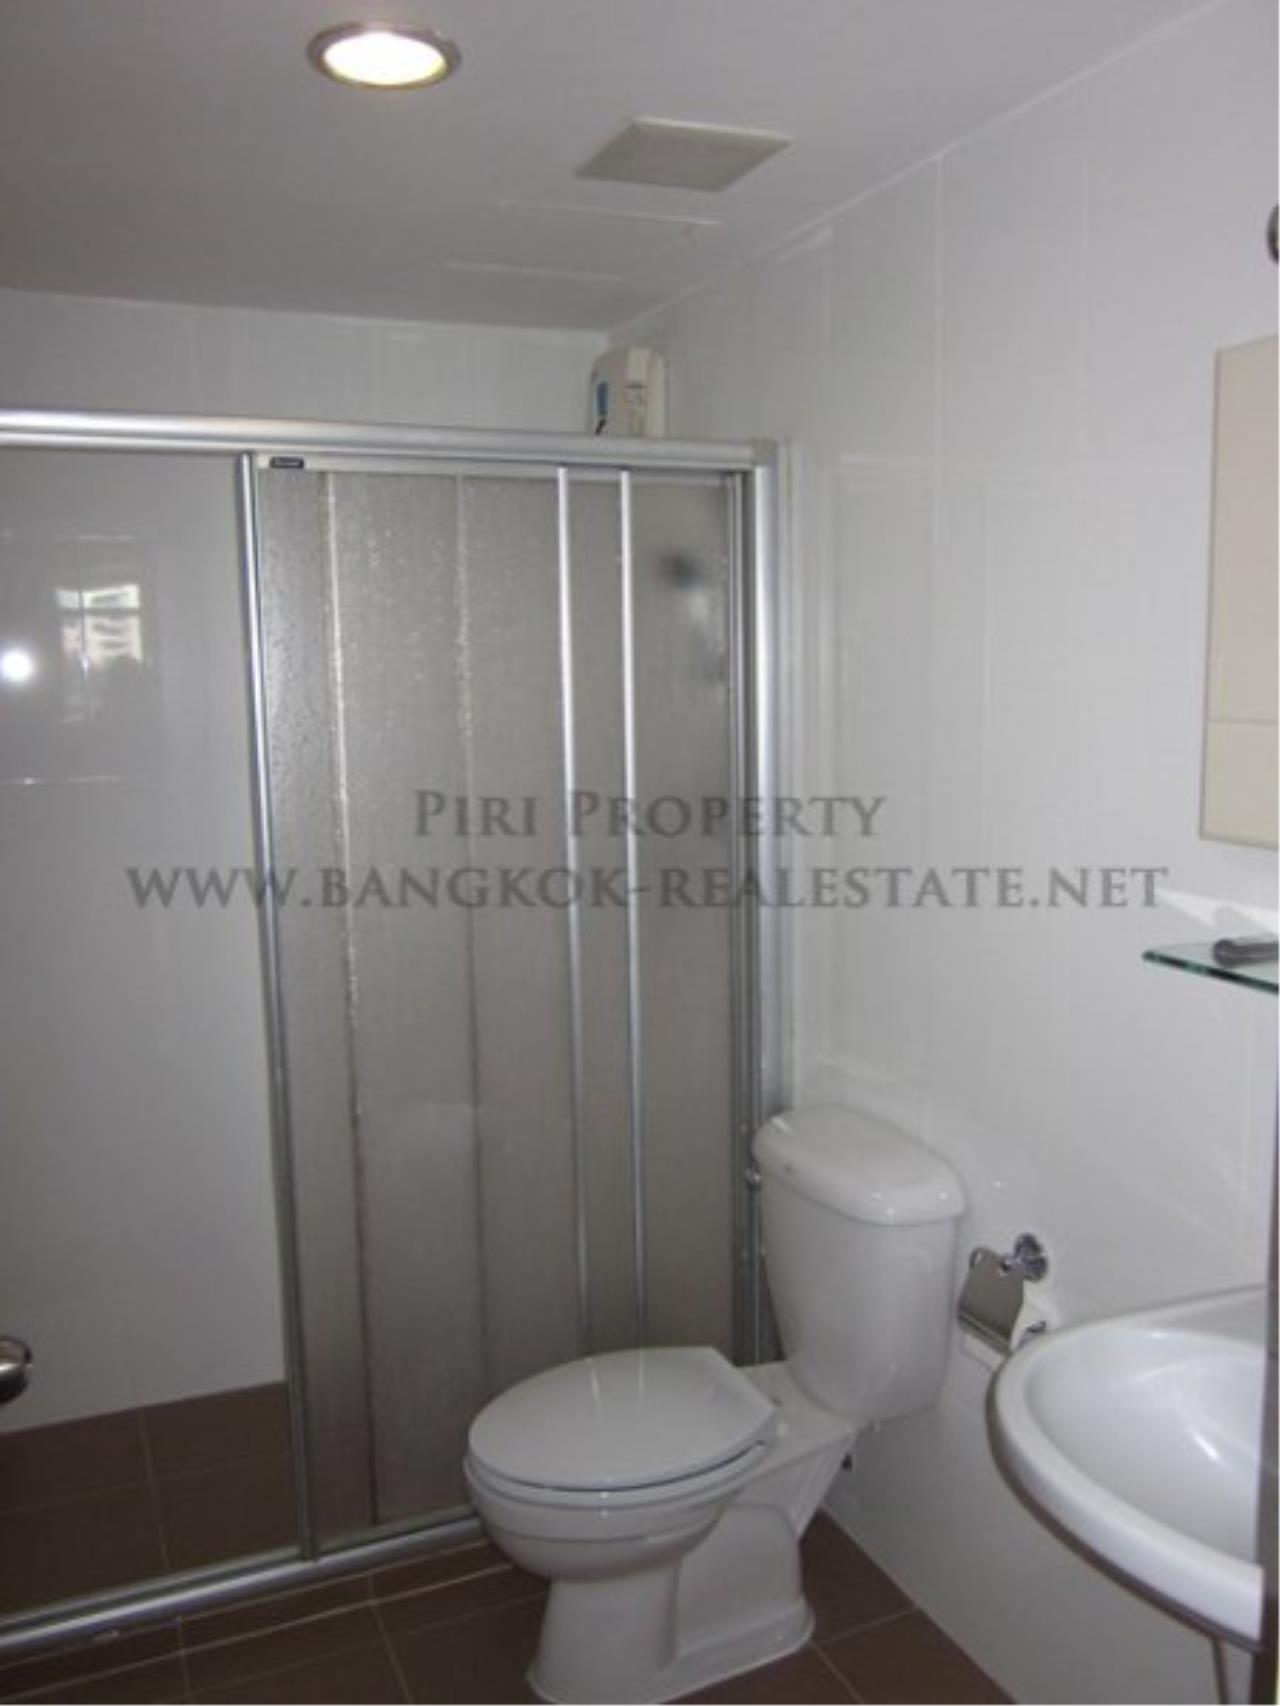 Piri Property Agency's 3 Bedroom in Phrom Phong - Royal Castle Condo for Rent 7